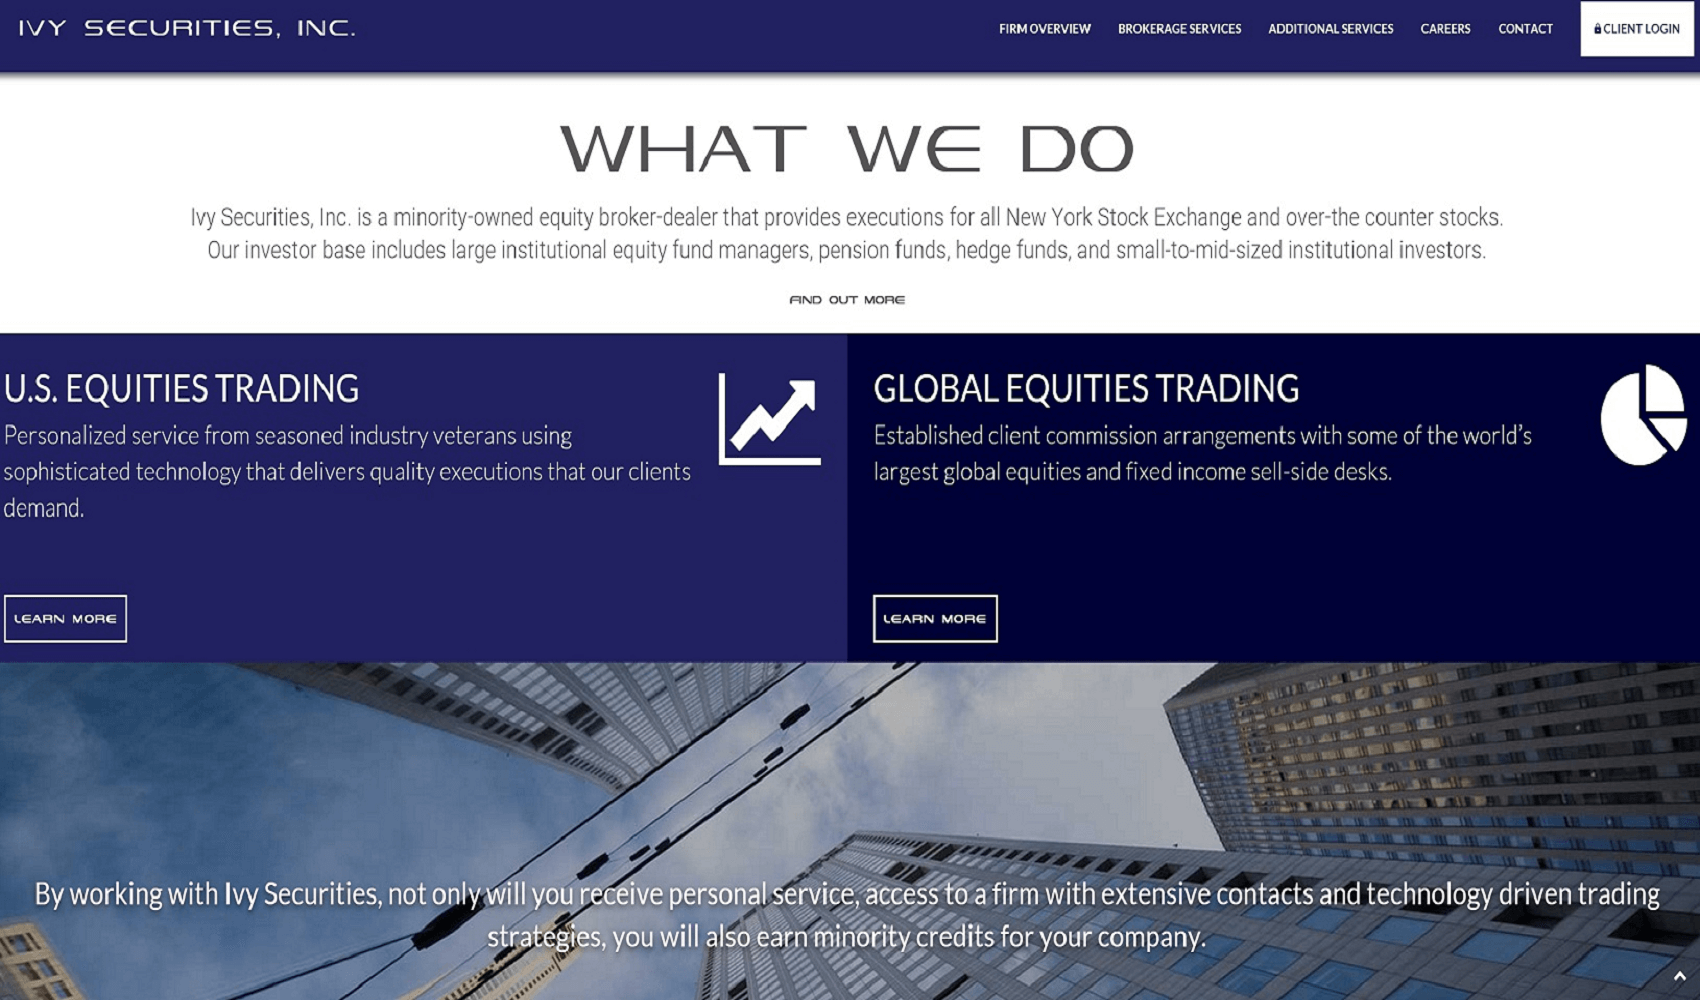 website design and SEO for institutional broker dealer